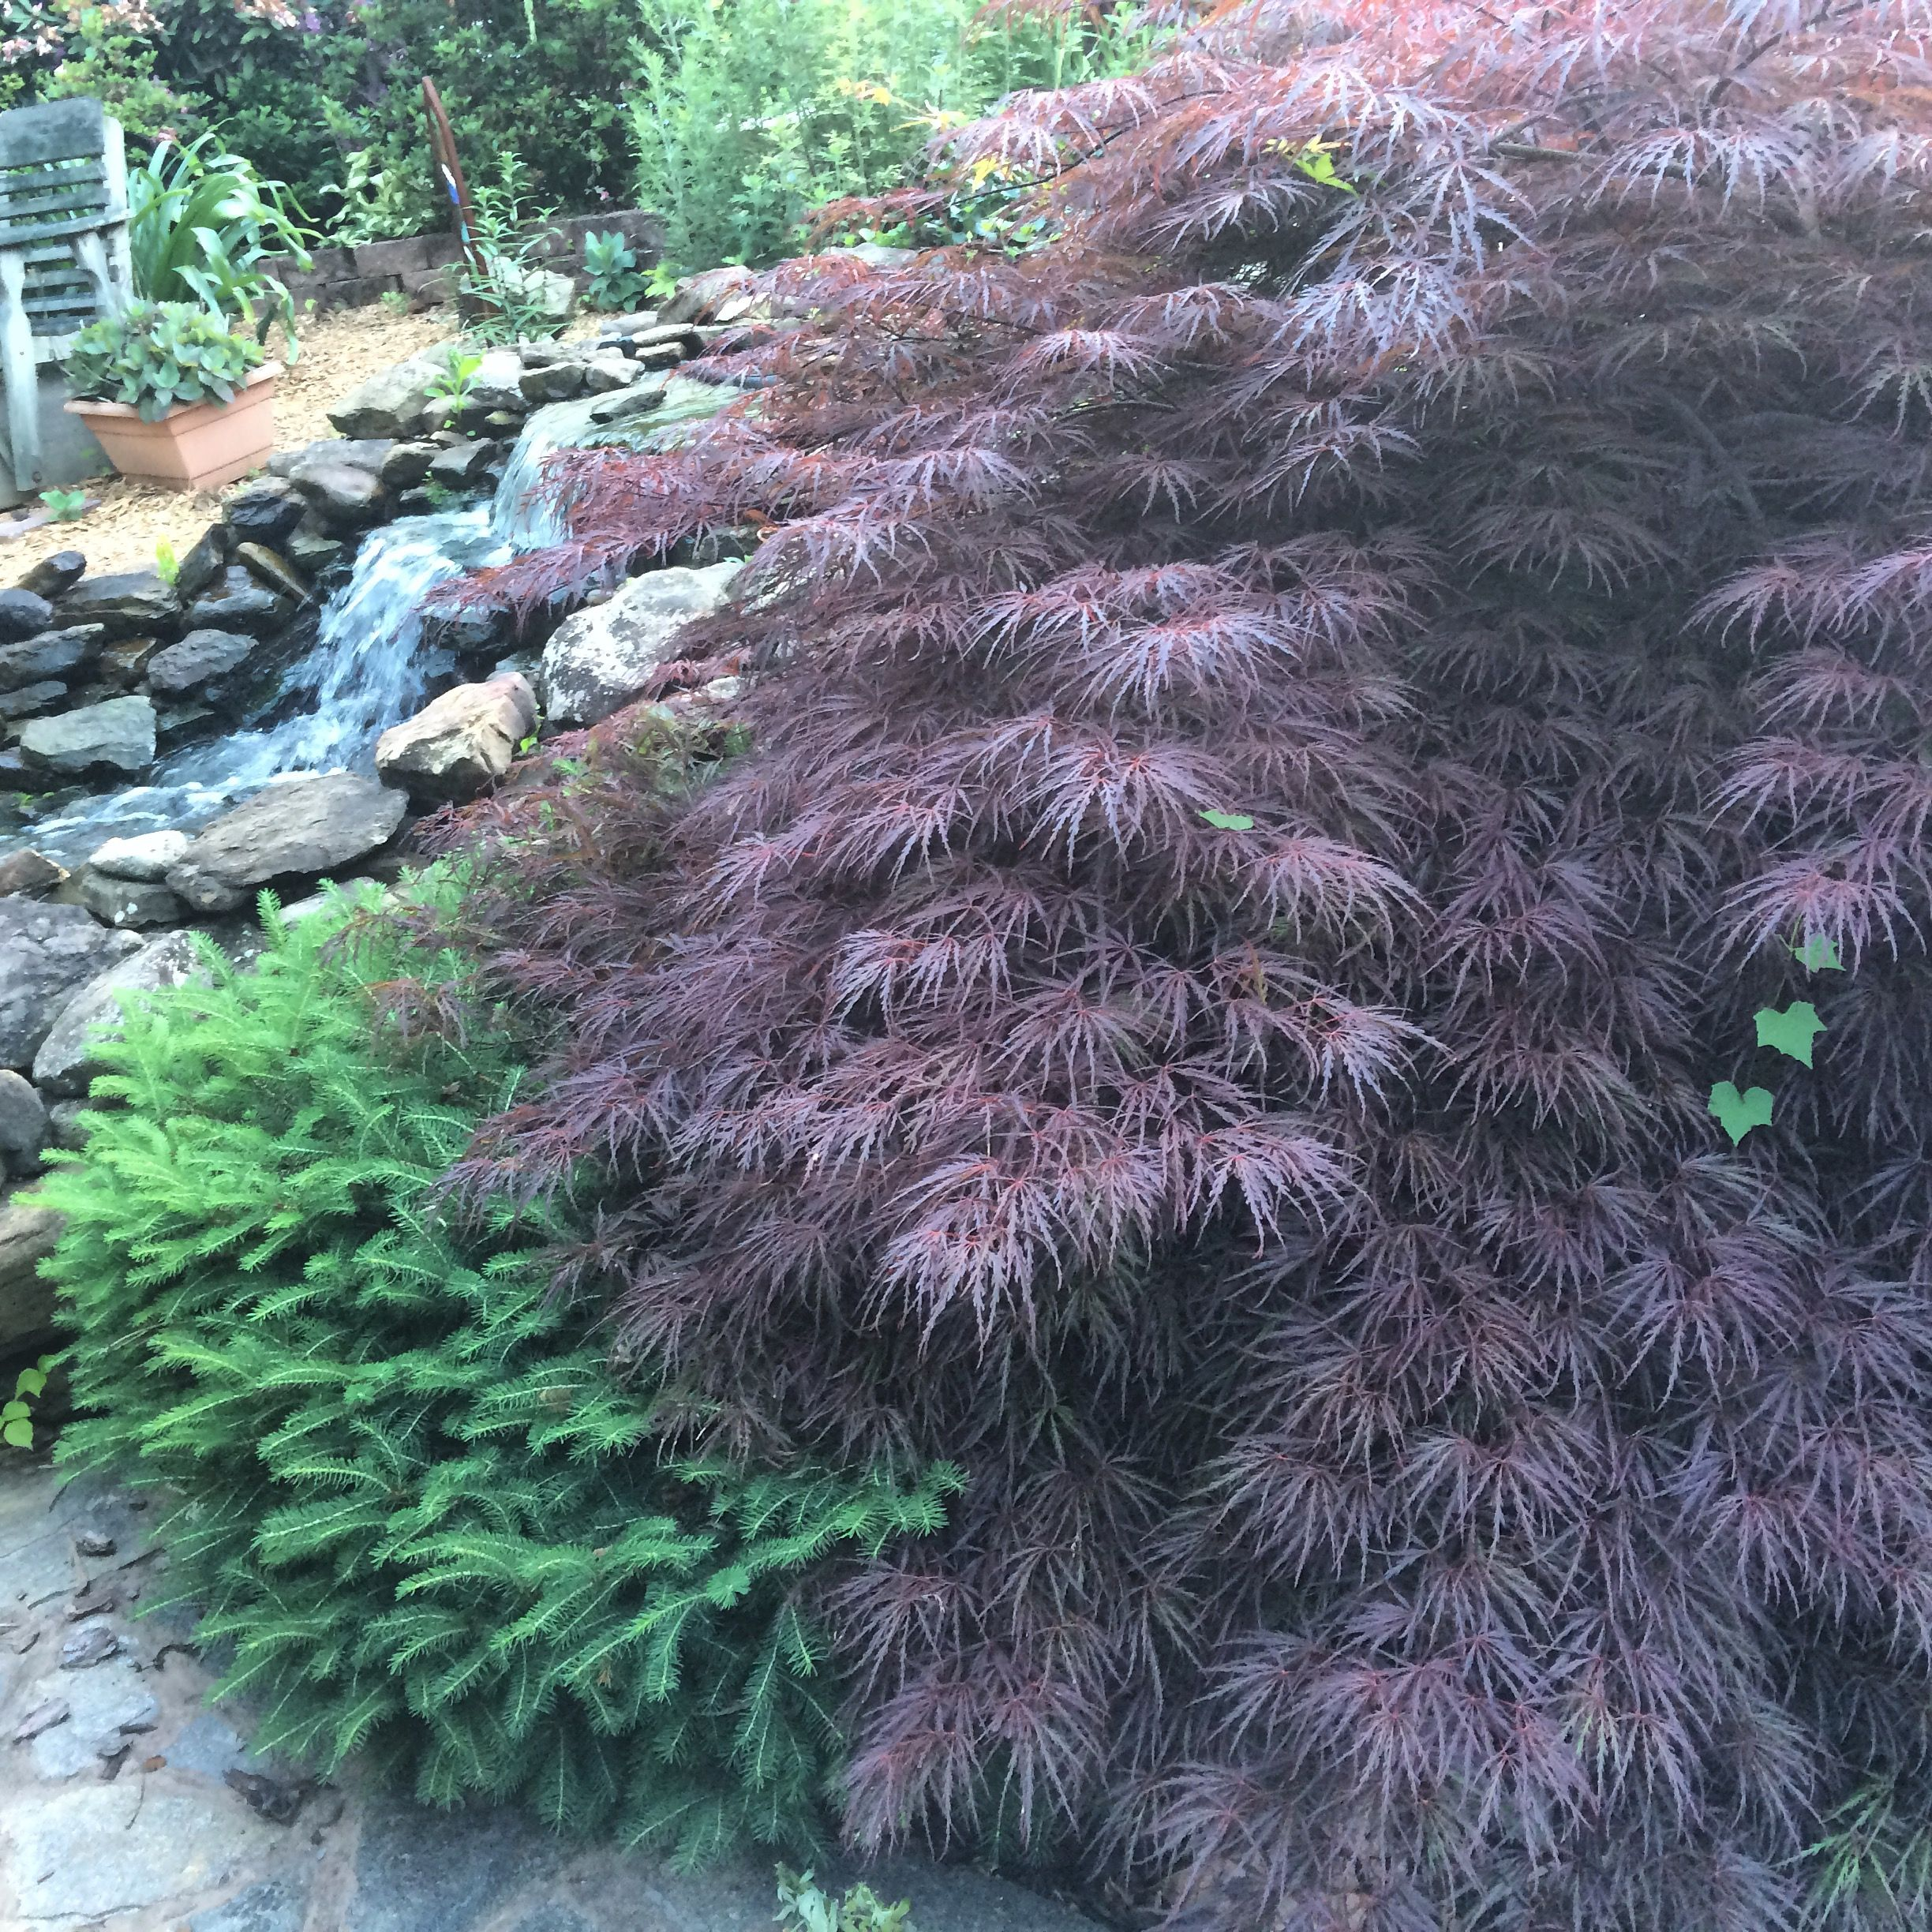 planted about 11 years ago are the bird nest spruce and